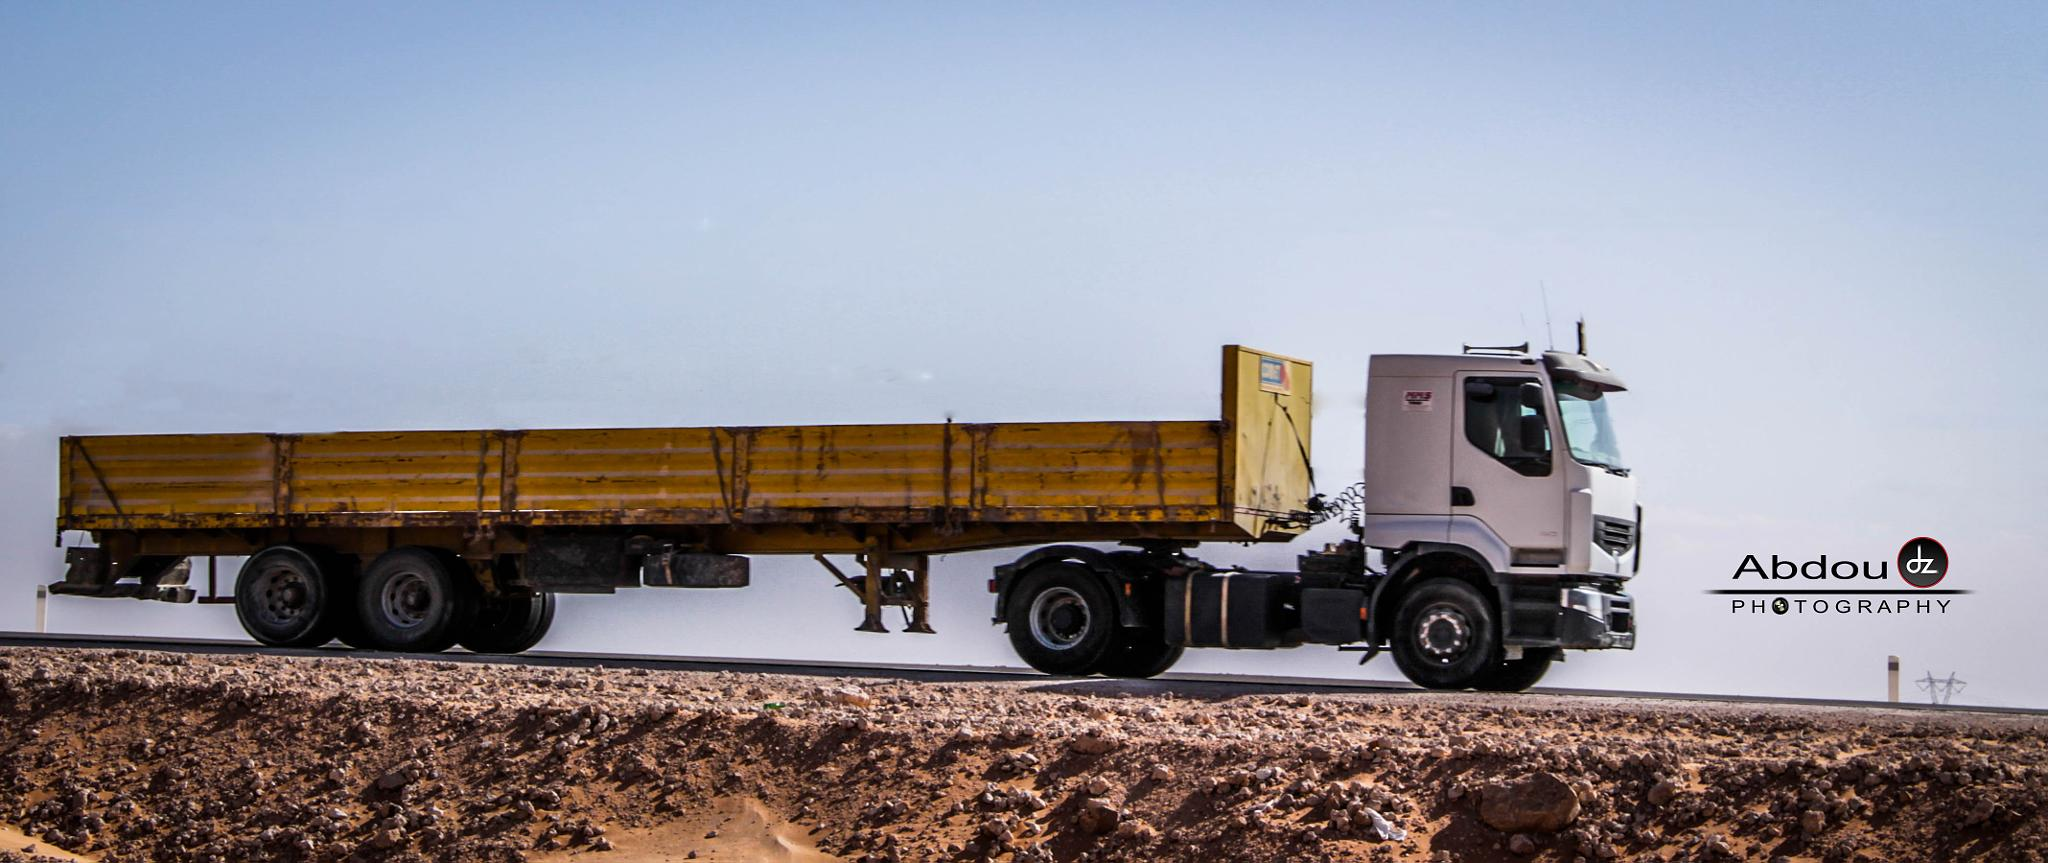 Truck  by Abdoudzphotography